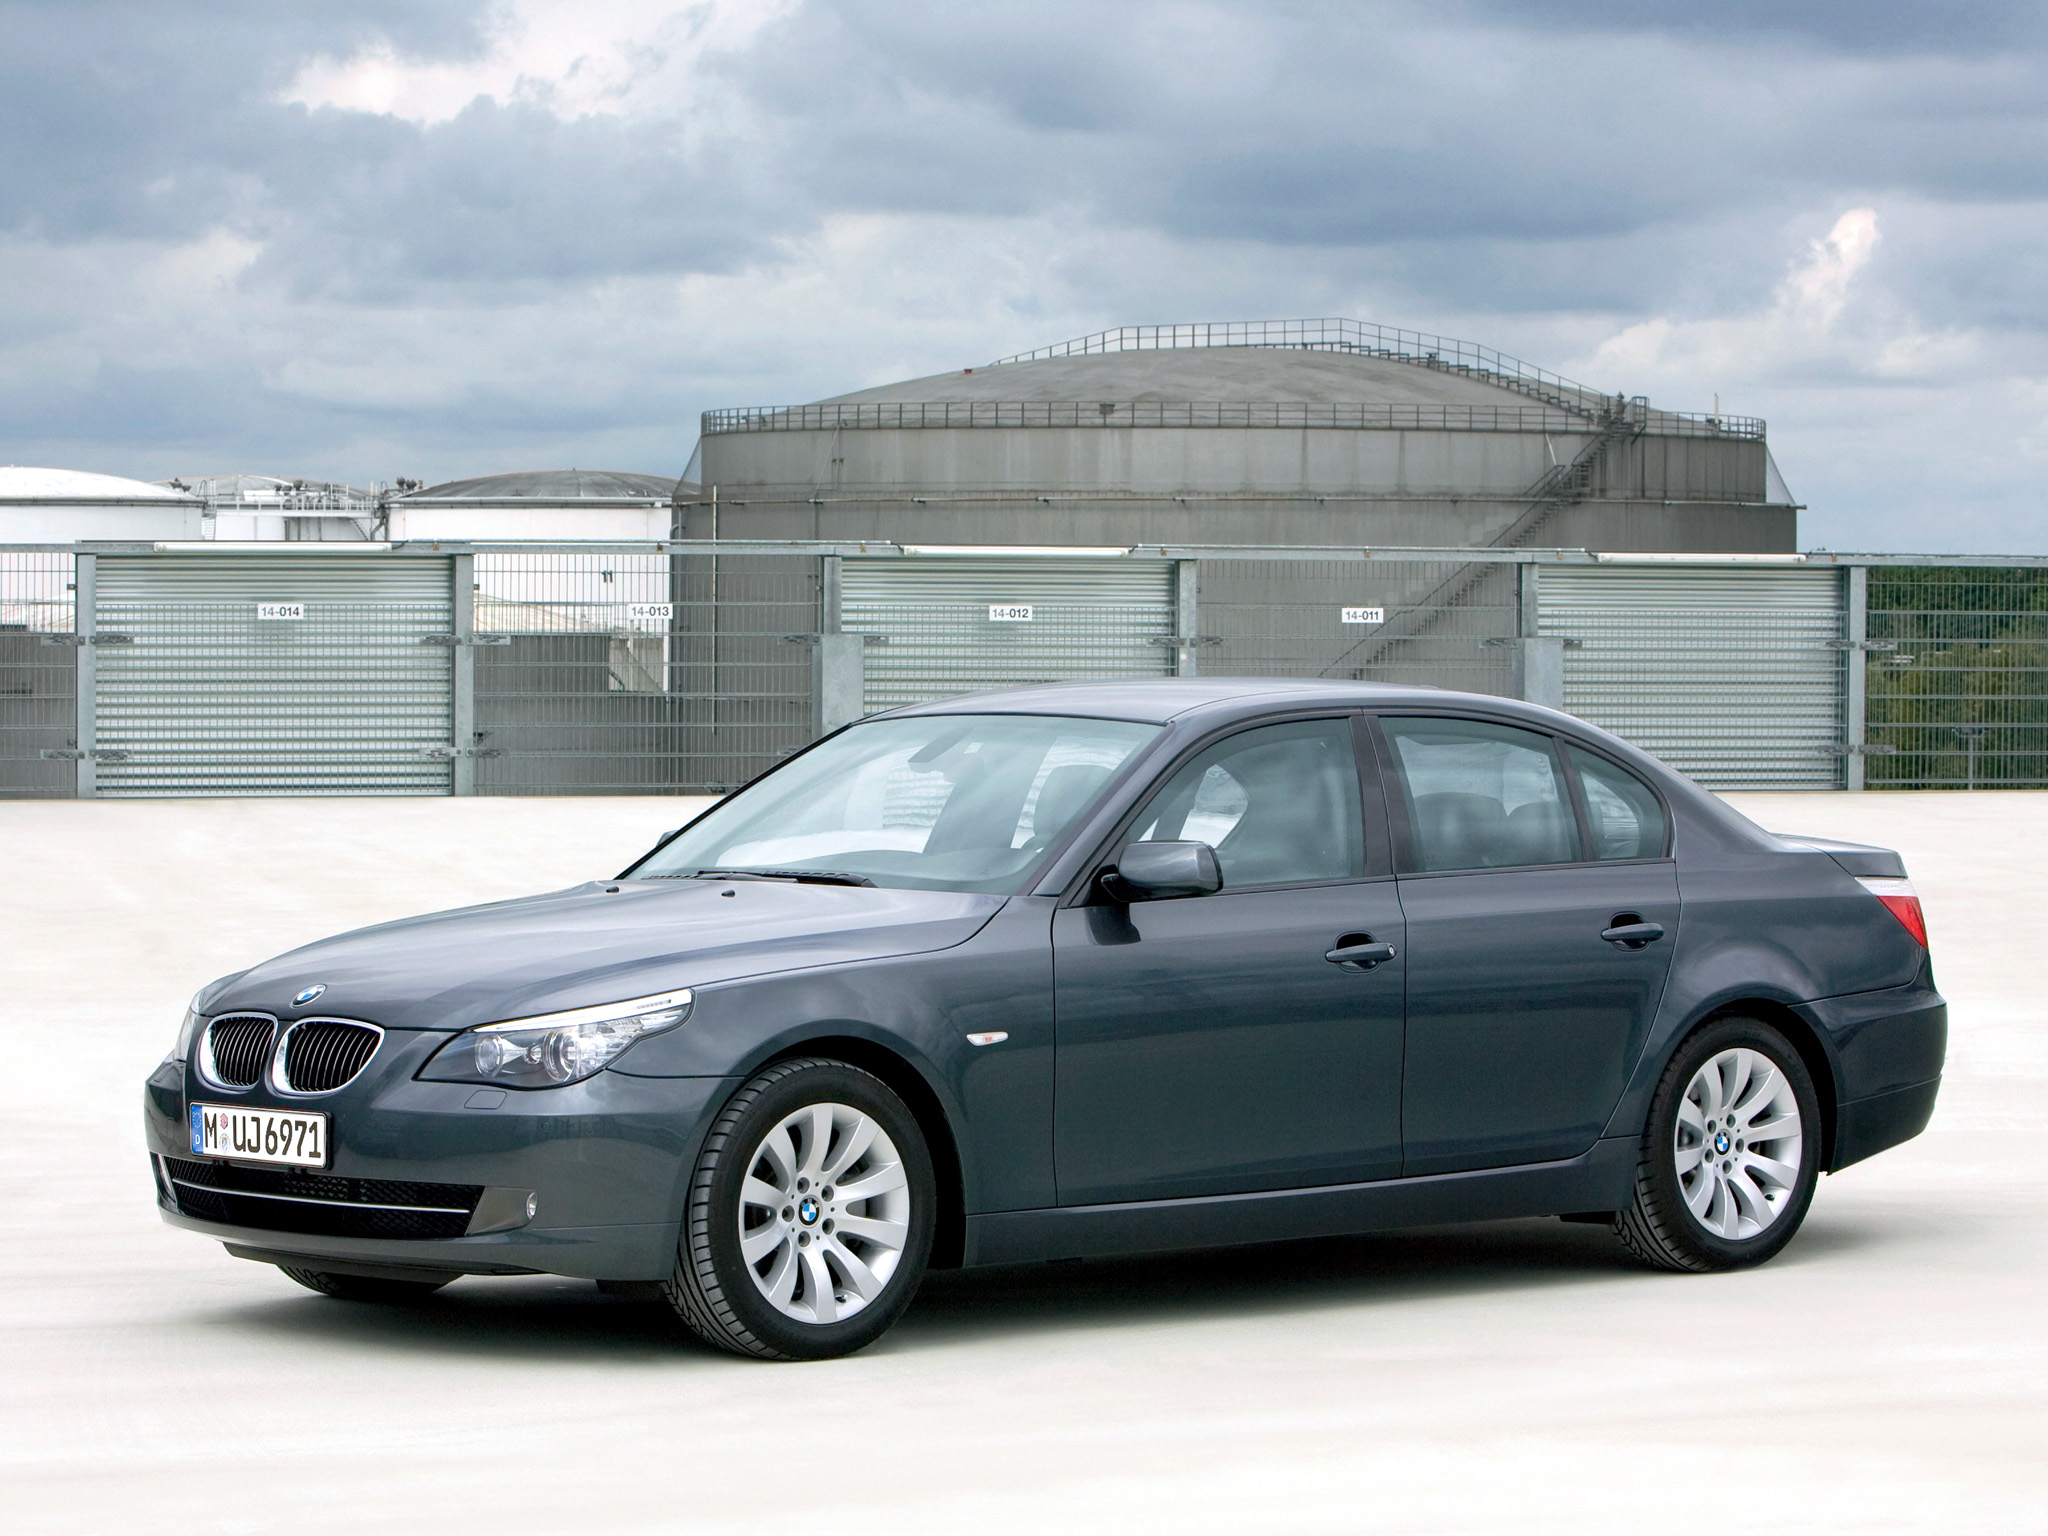 2008 armored bmw 5 series security e60 g wallpaper. Black Bedroom Furniture Sets. Home Design Ideas